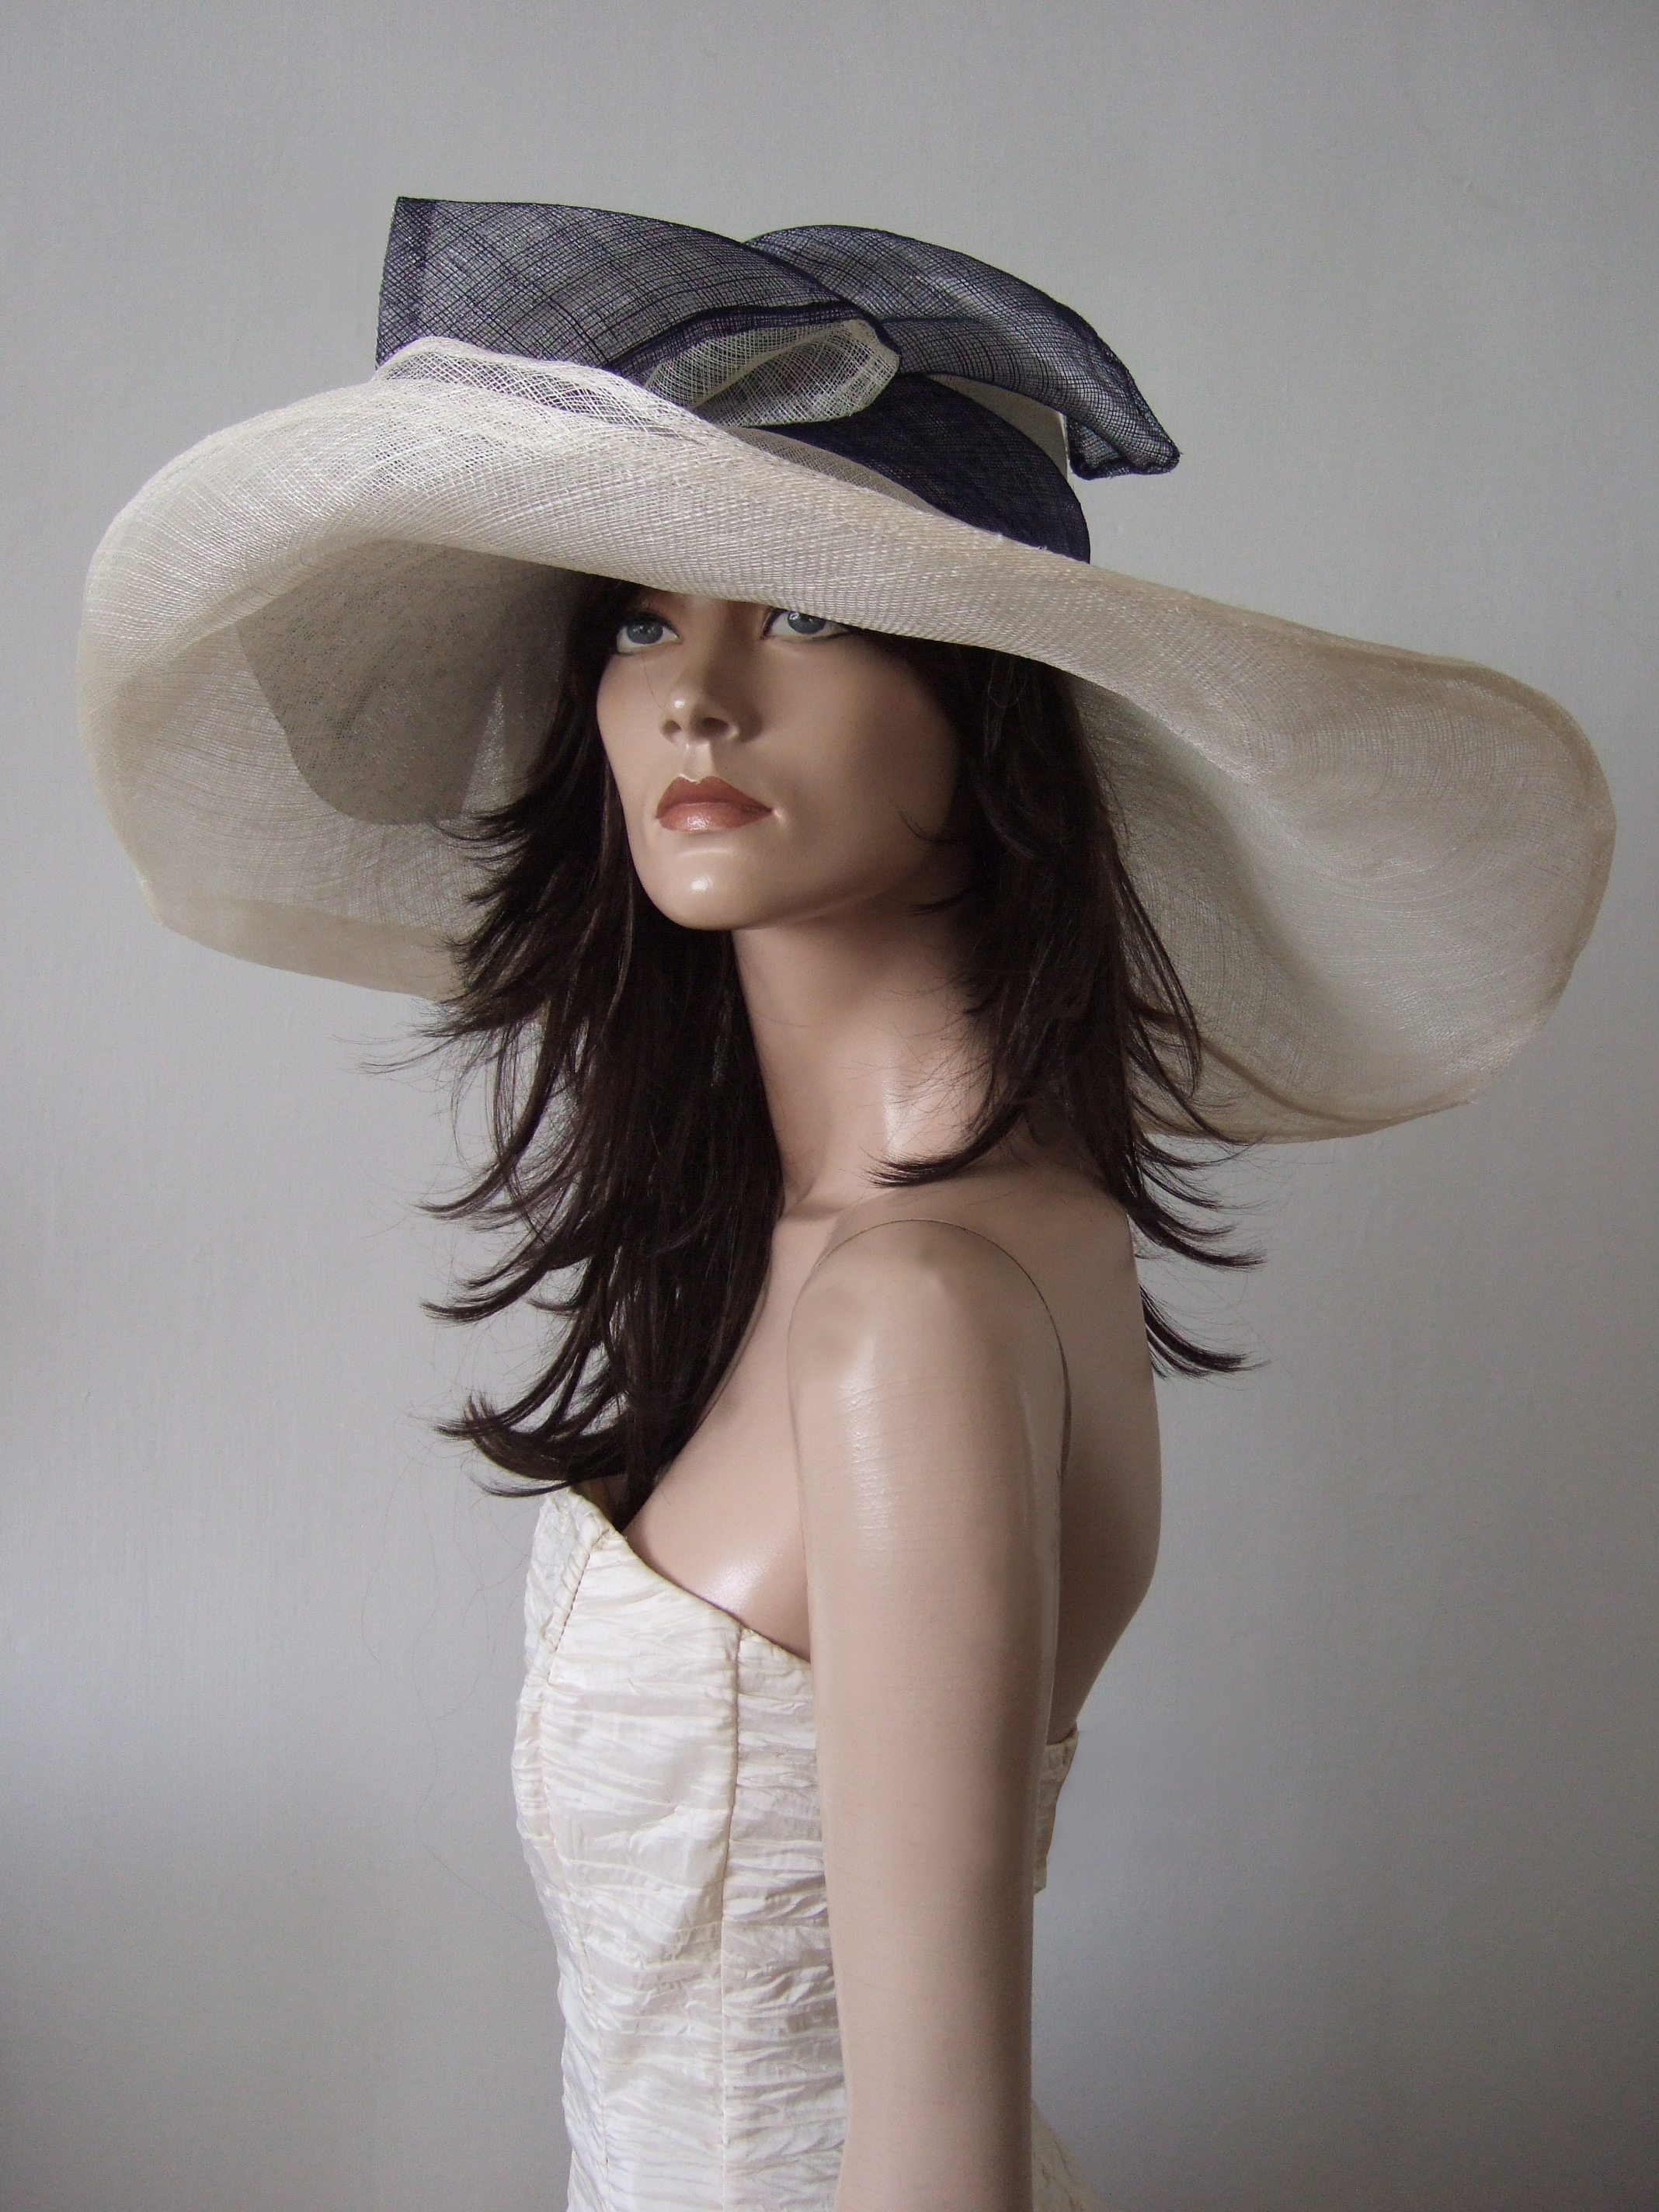 Ivory Formal Wedding Guest Hats 2021. Ivory and Navy Hats for Royal Ascot 2021. Big Royal Ascot Hats 2021, Formal Hat Hire 2020. Hat Hire Berkshire. Wedding guest hats 2020. Hats for Hire 2020. Ladies Wedding Hats 2021. Big Mother of the Bride Hats 2021. Royal Ascot Hat Rental 2021. Wedding Hats for Hire UK 2020. Hire Hats for Epsom Races 2020.